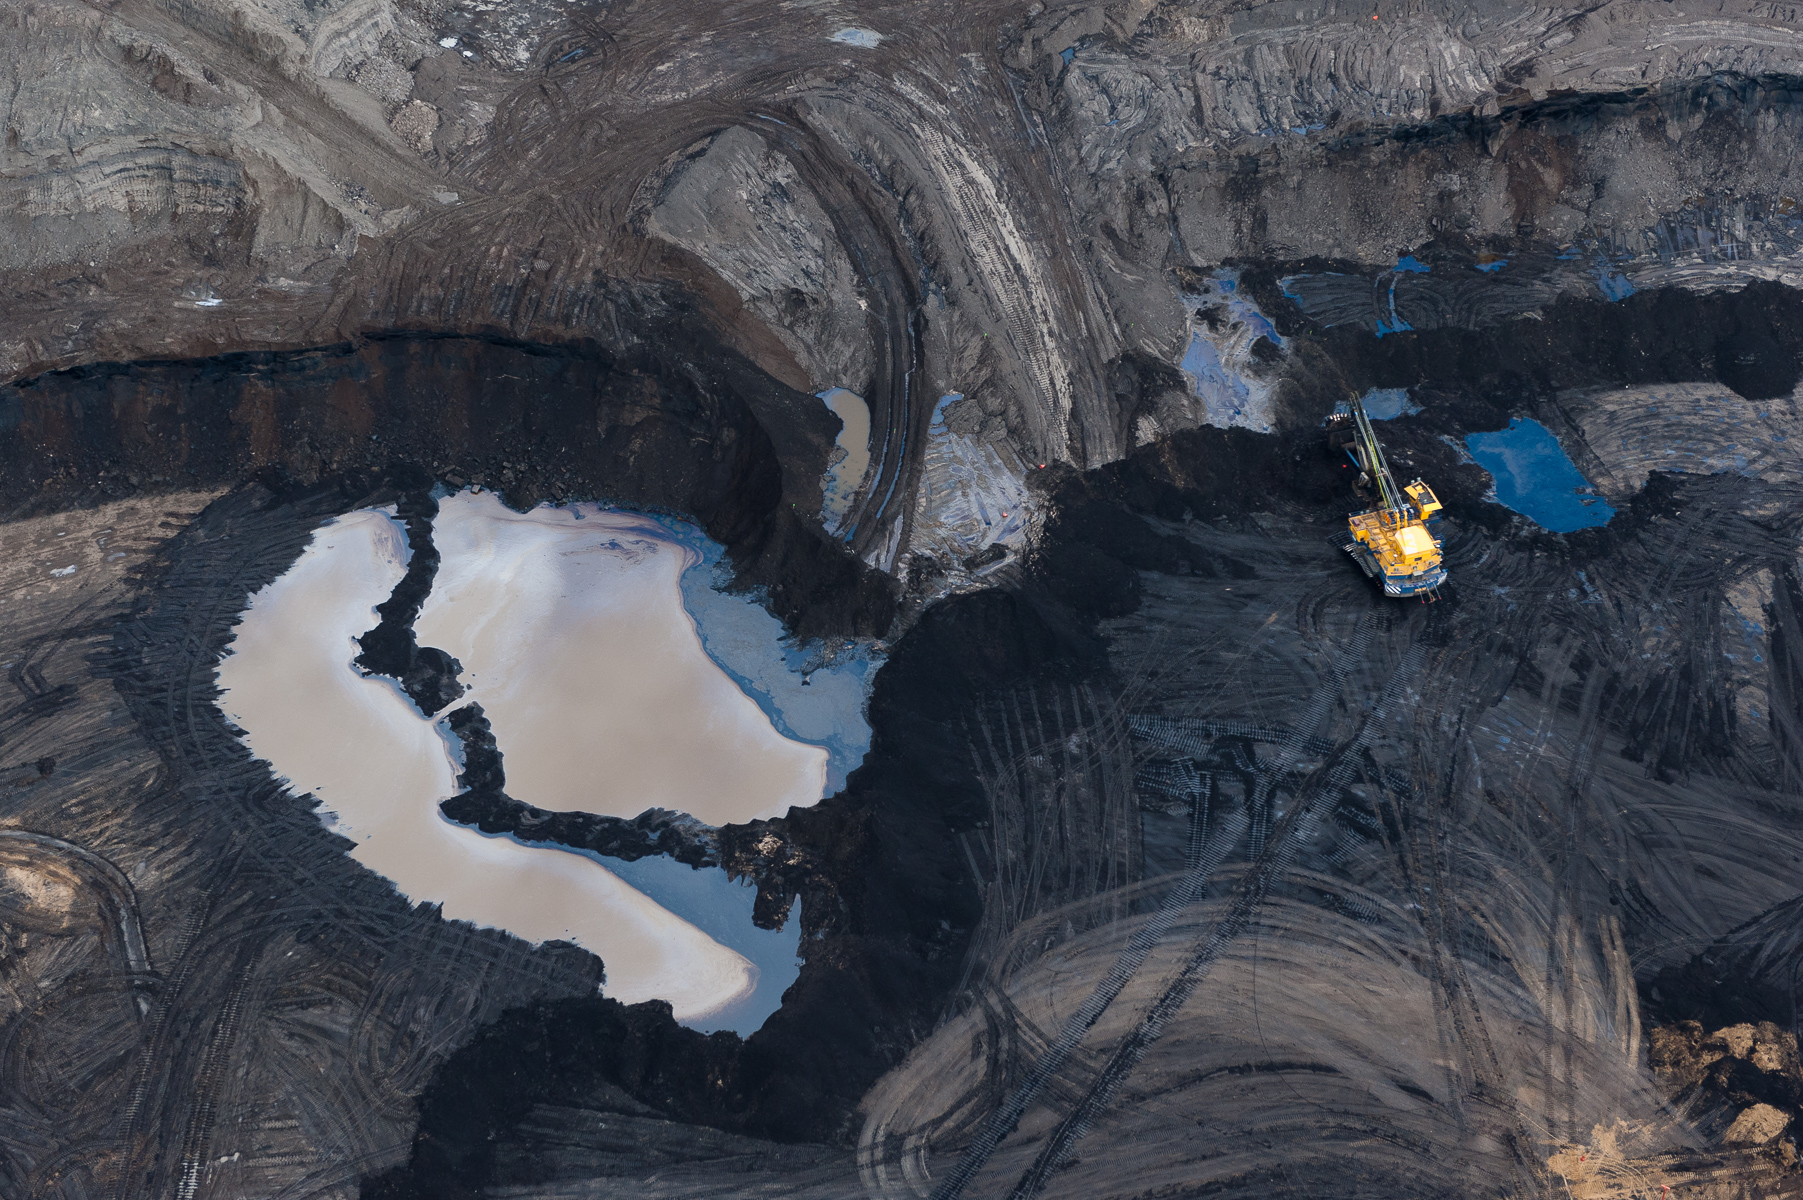 """At the edge of an 80-meter deep mine, a massive tar sands machine is dwarfed by the surrounding landscape. The mines, machinery, and trucks of the Alberta Tar Sands were the inspiration for Avatar's Edmonton-born art director's vision of the mining operation on Pandora.Fine Art Print Price ListOpen and Larger Edition Prints. These are produced to the same high standards as our limited edition prints and offer collectors a more affordable way to get to know our work.Prints  are limited to an edition of 50 in each size above 20"""" X 24"""". Prices are for prints only and do not include tax or shipping.All prices are in US dollars.12""""x18"""" $350.16""""x24""""        $650.20""""x30"""" $1000.24""""x36""""        $1500. 30""""x45"""" $2300.40""""x60""""      $3600"""